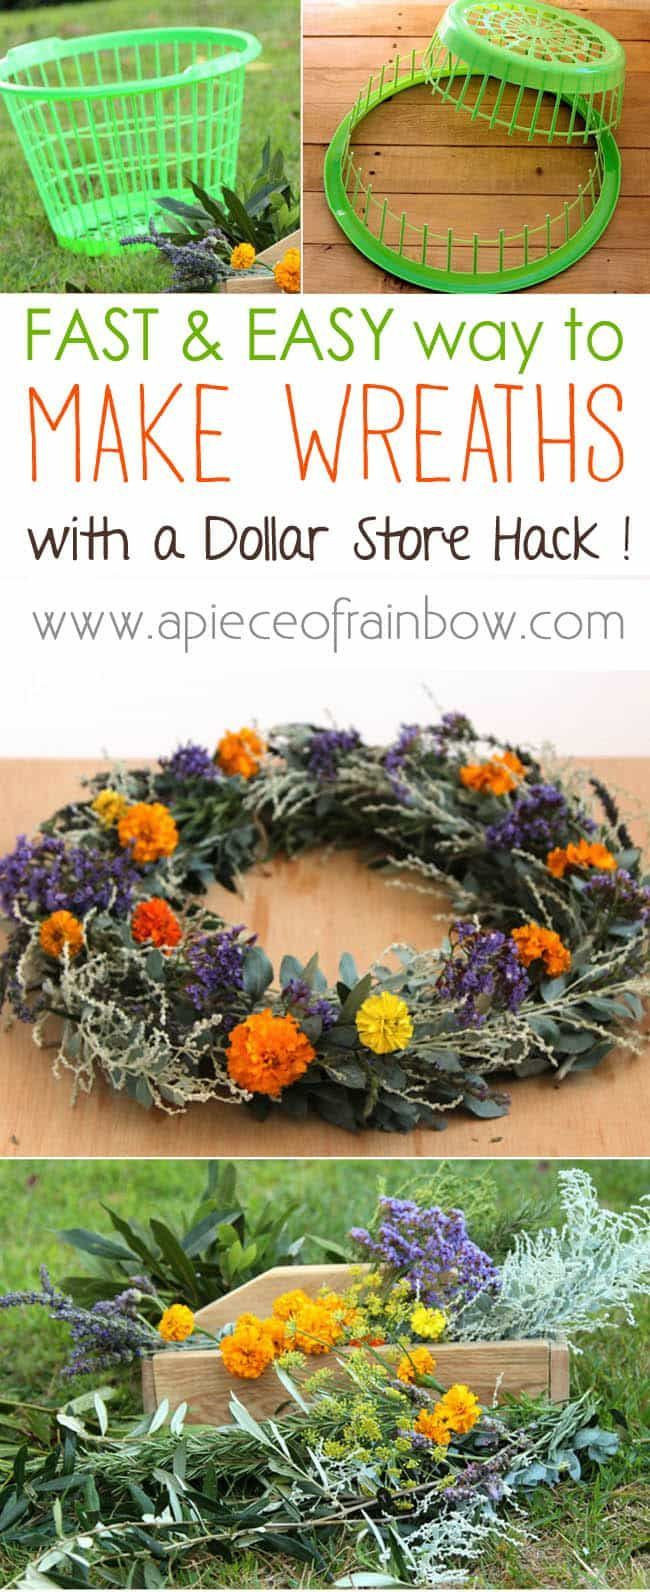 How to make wreath super fast with this dollar store hack! Turn a laundry basket into a wreath jig, plus tutorials on a flower wreath & a herb wreath!